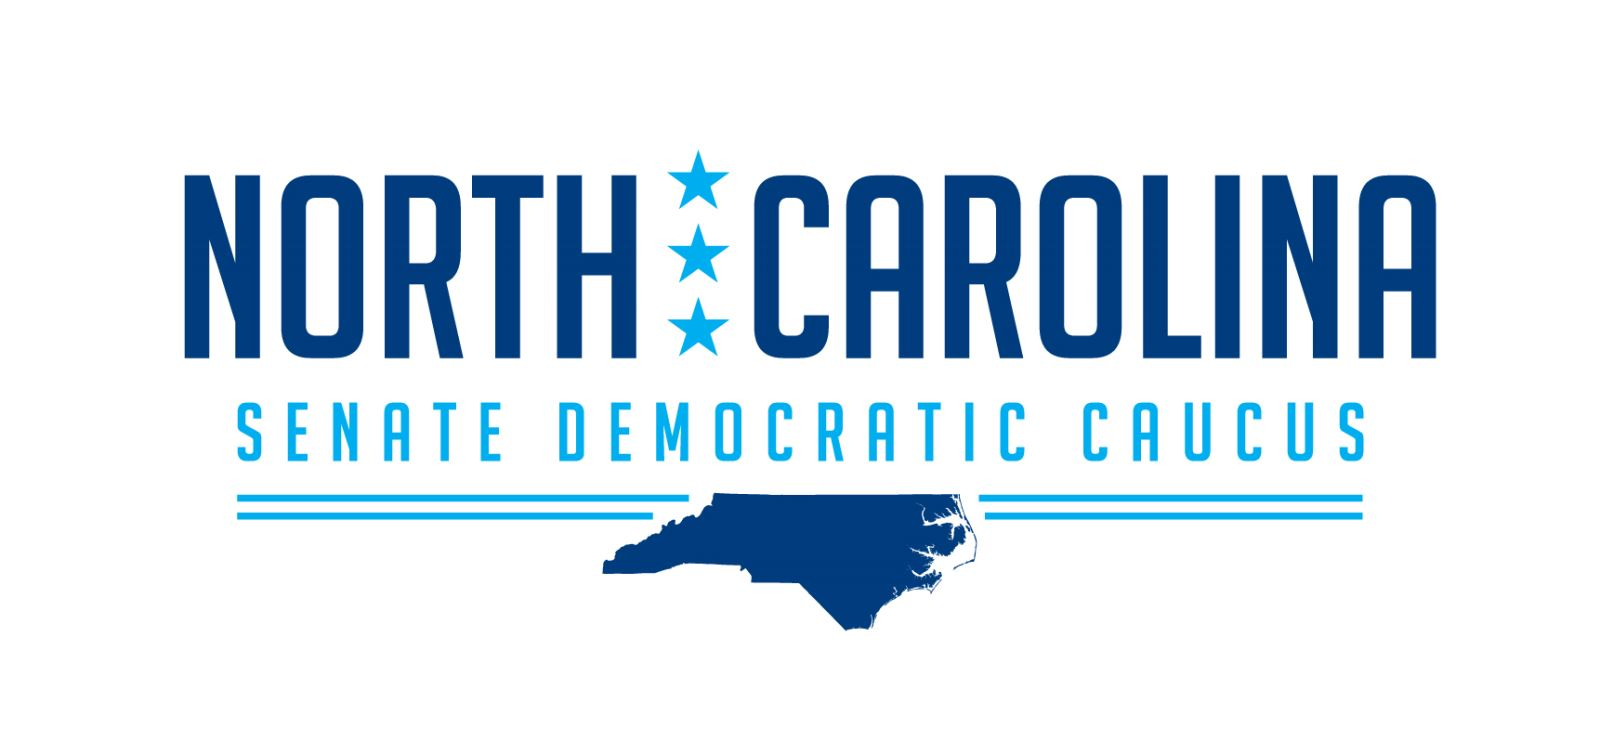 NC Senate Democratic Caucus Home Page